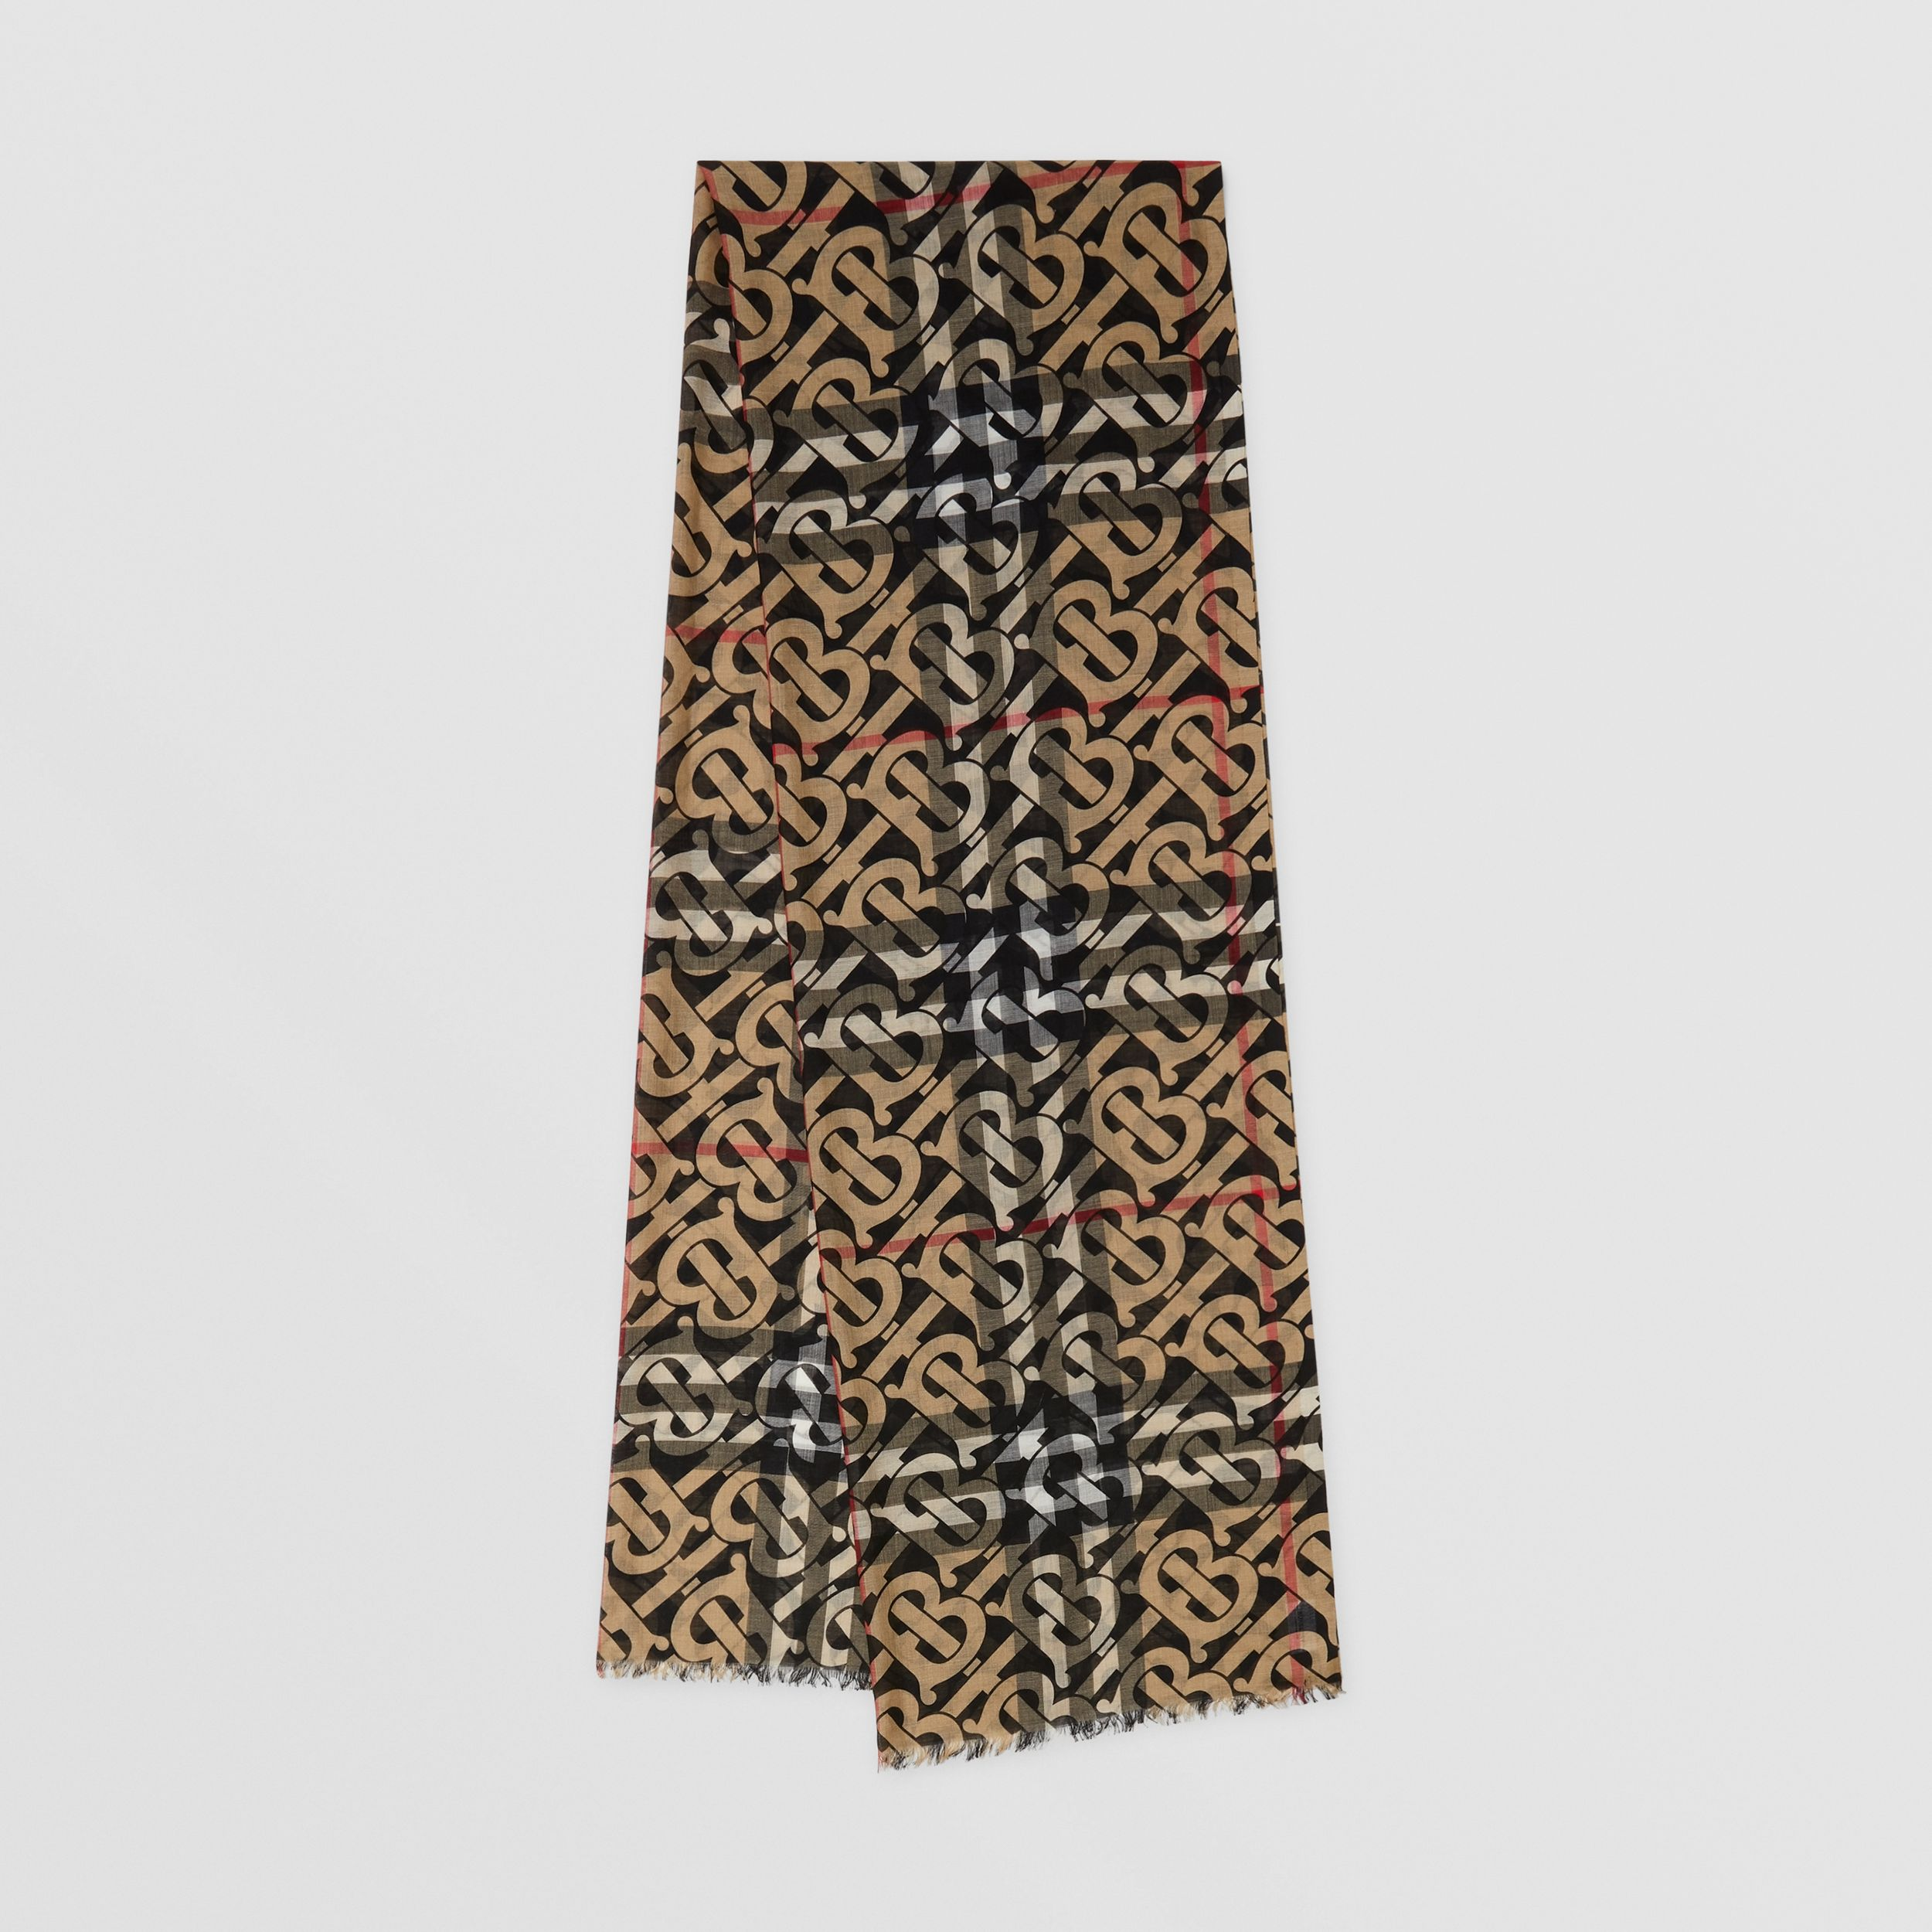 Monogram Print Lightweight Check Wool Silk Scarf in Archive Beige | Burberry Singapore - 1